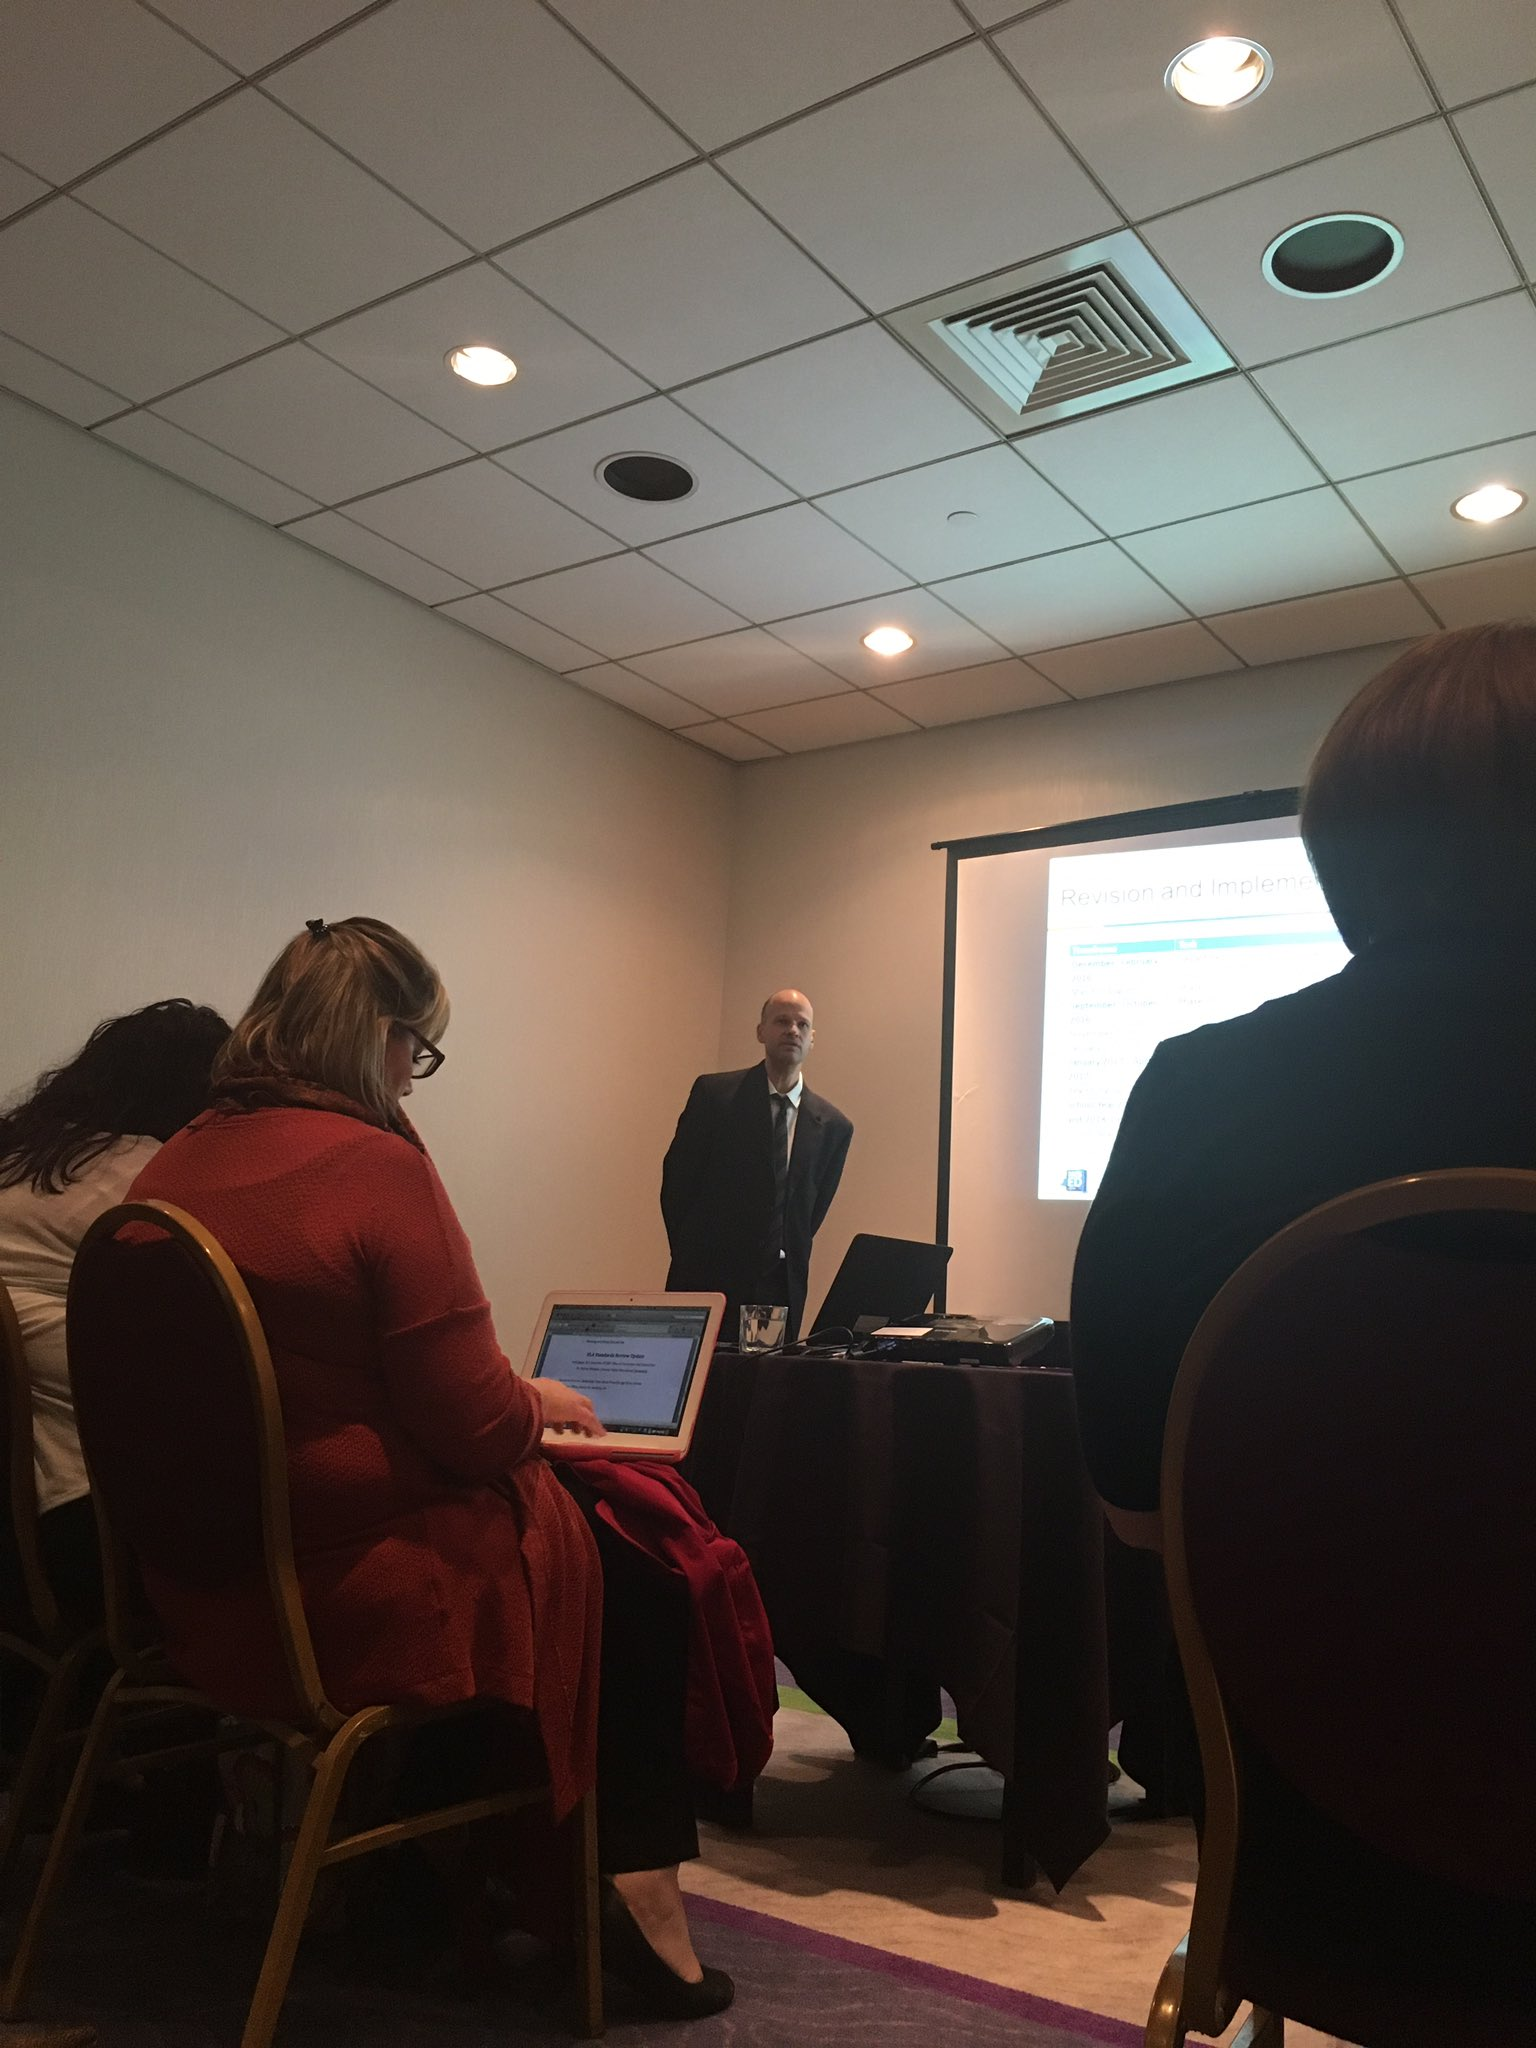 @NYSEDNews hearing about latest on standards revisions @nysreading - looking forward to more details thank you Eric Sweet and Patrick https://t.co/CbBCFvNWLe